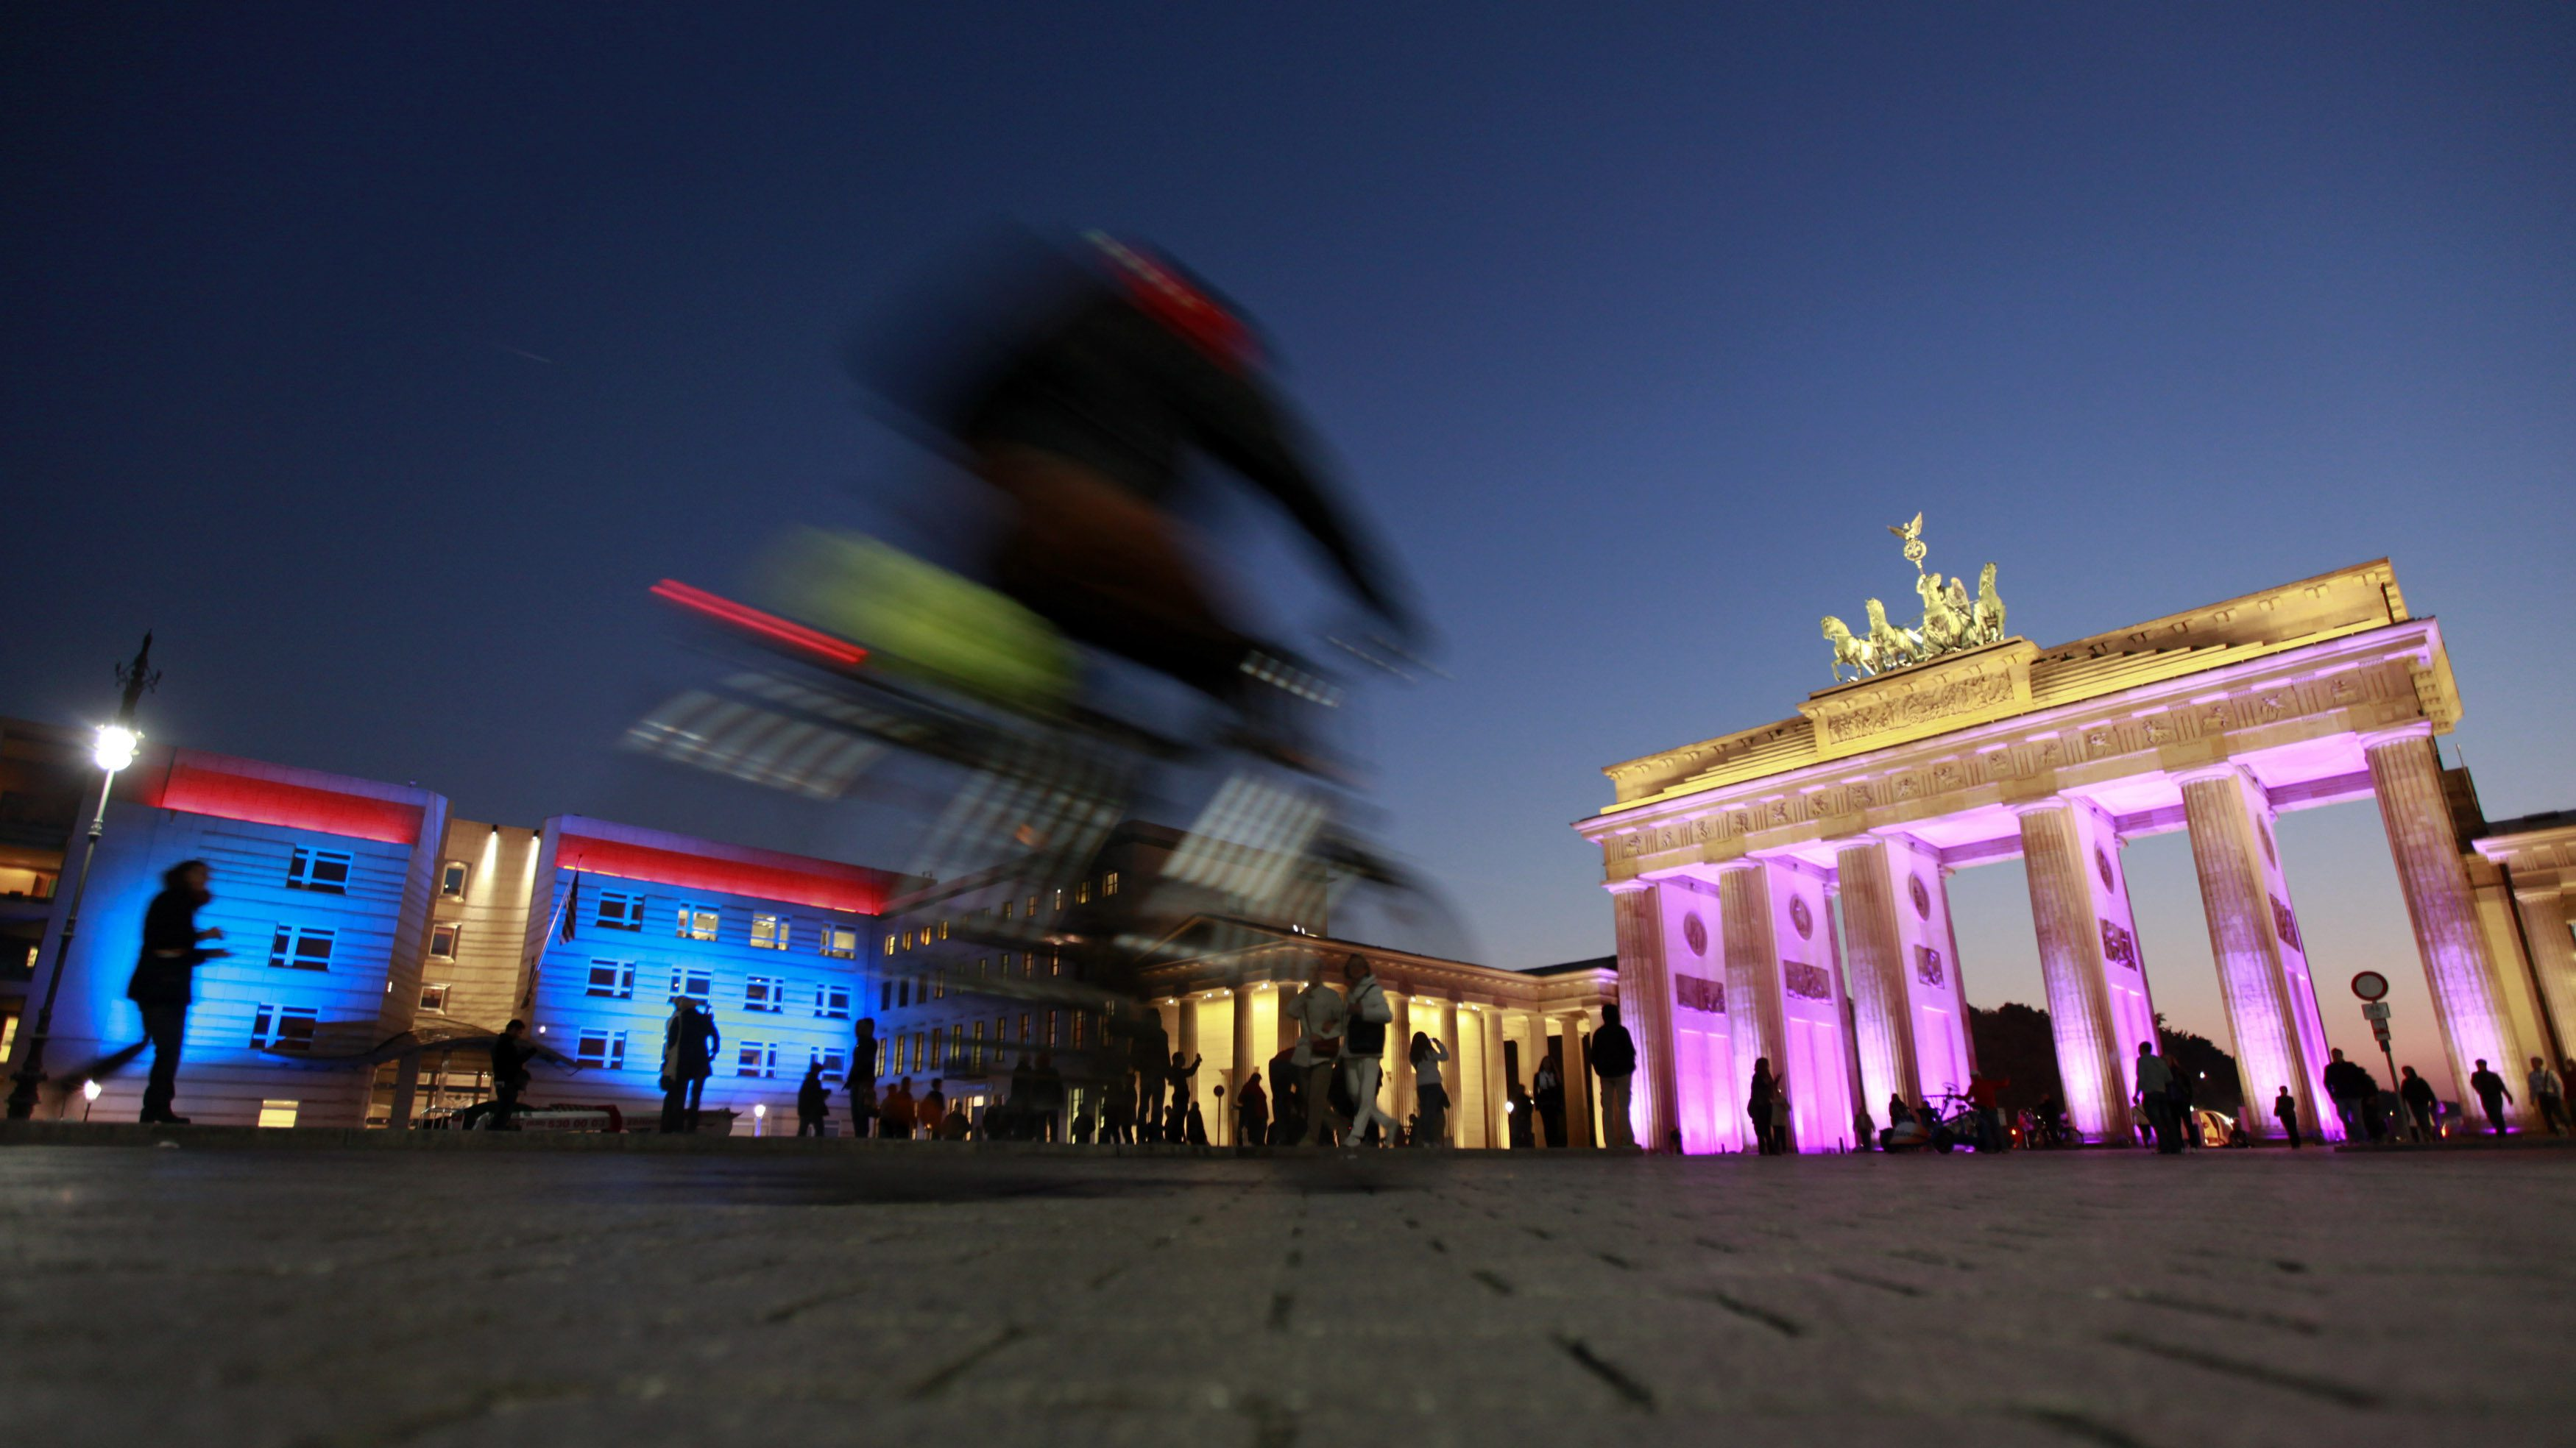 The Brandenburg Gate and the U.S. embassy are illuminated during a rehearsal for the upcoming Festival of Lights in Berlin